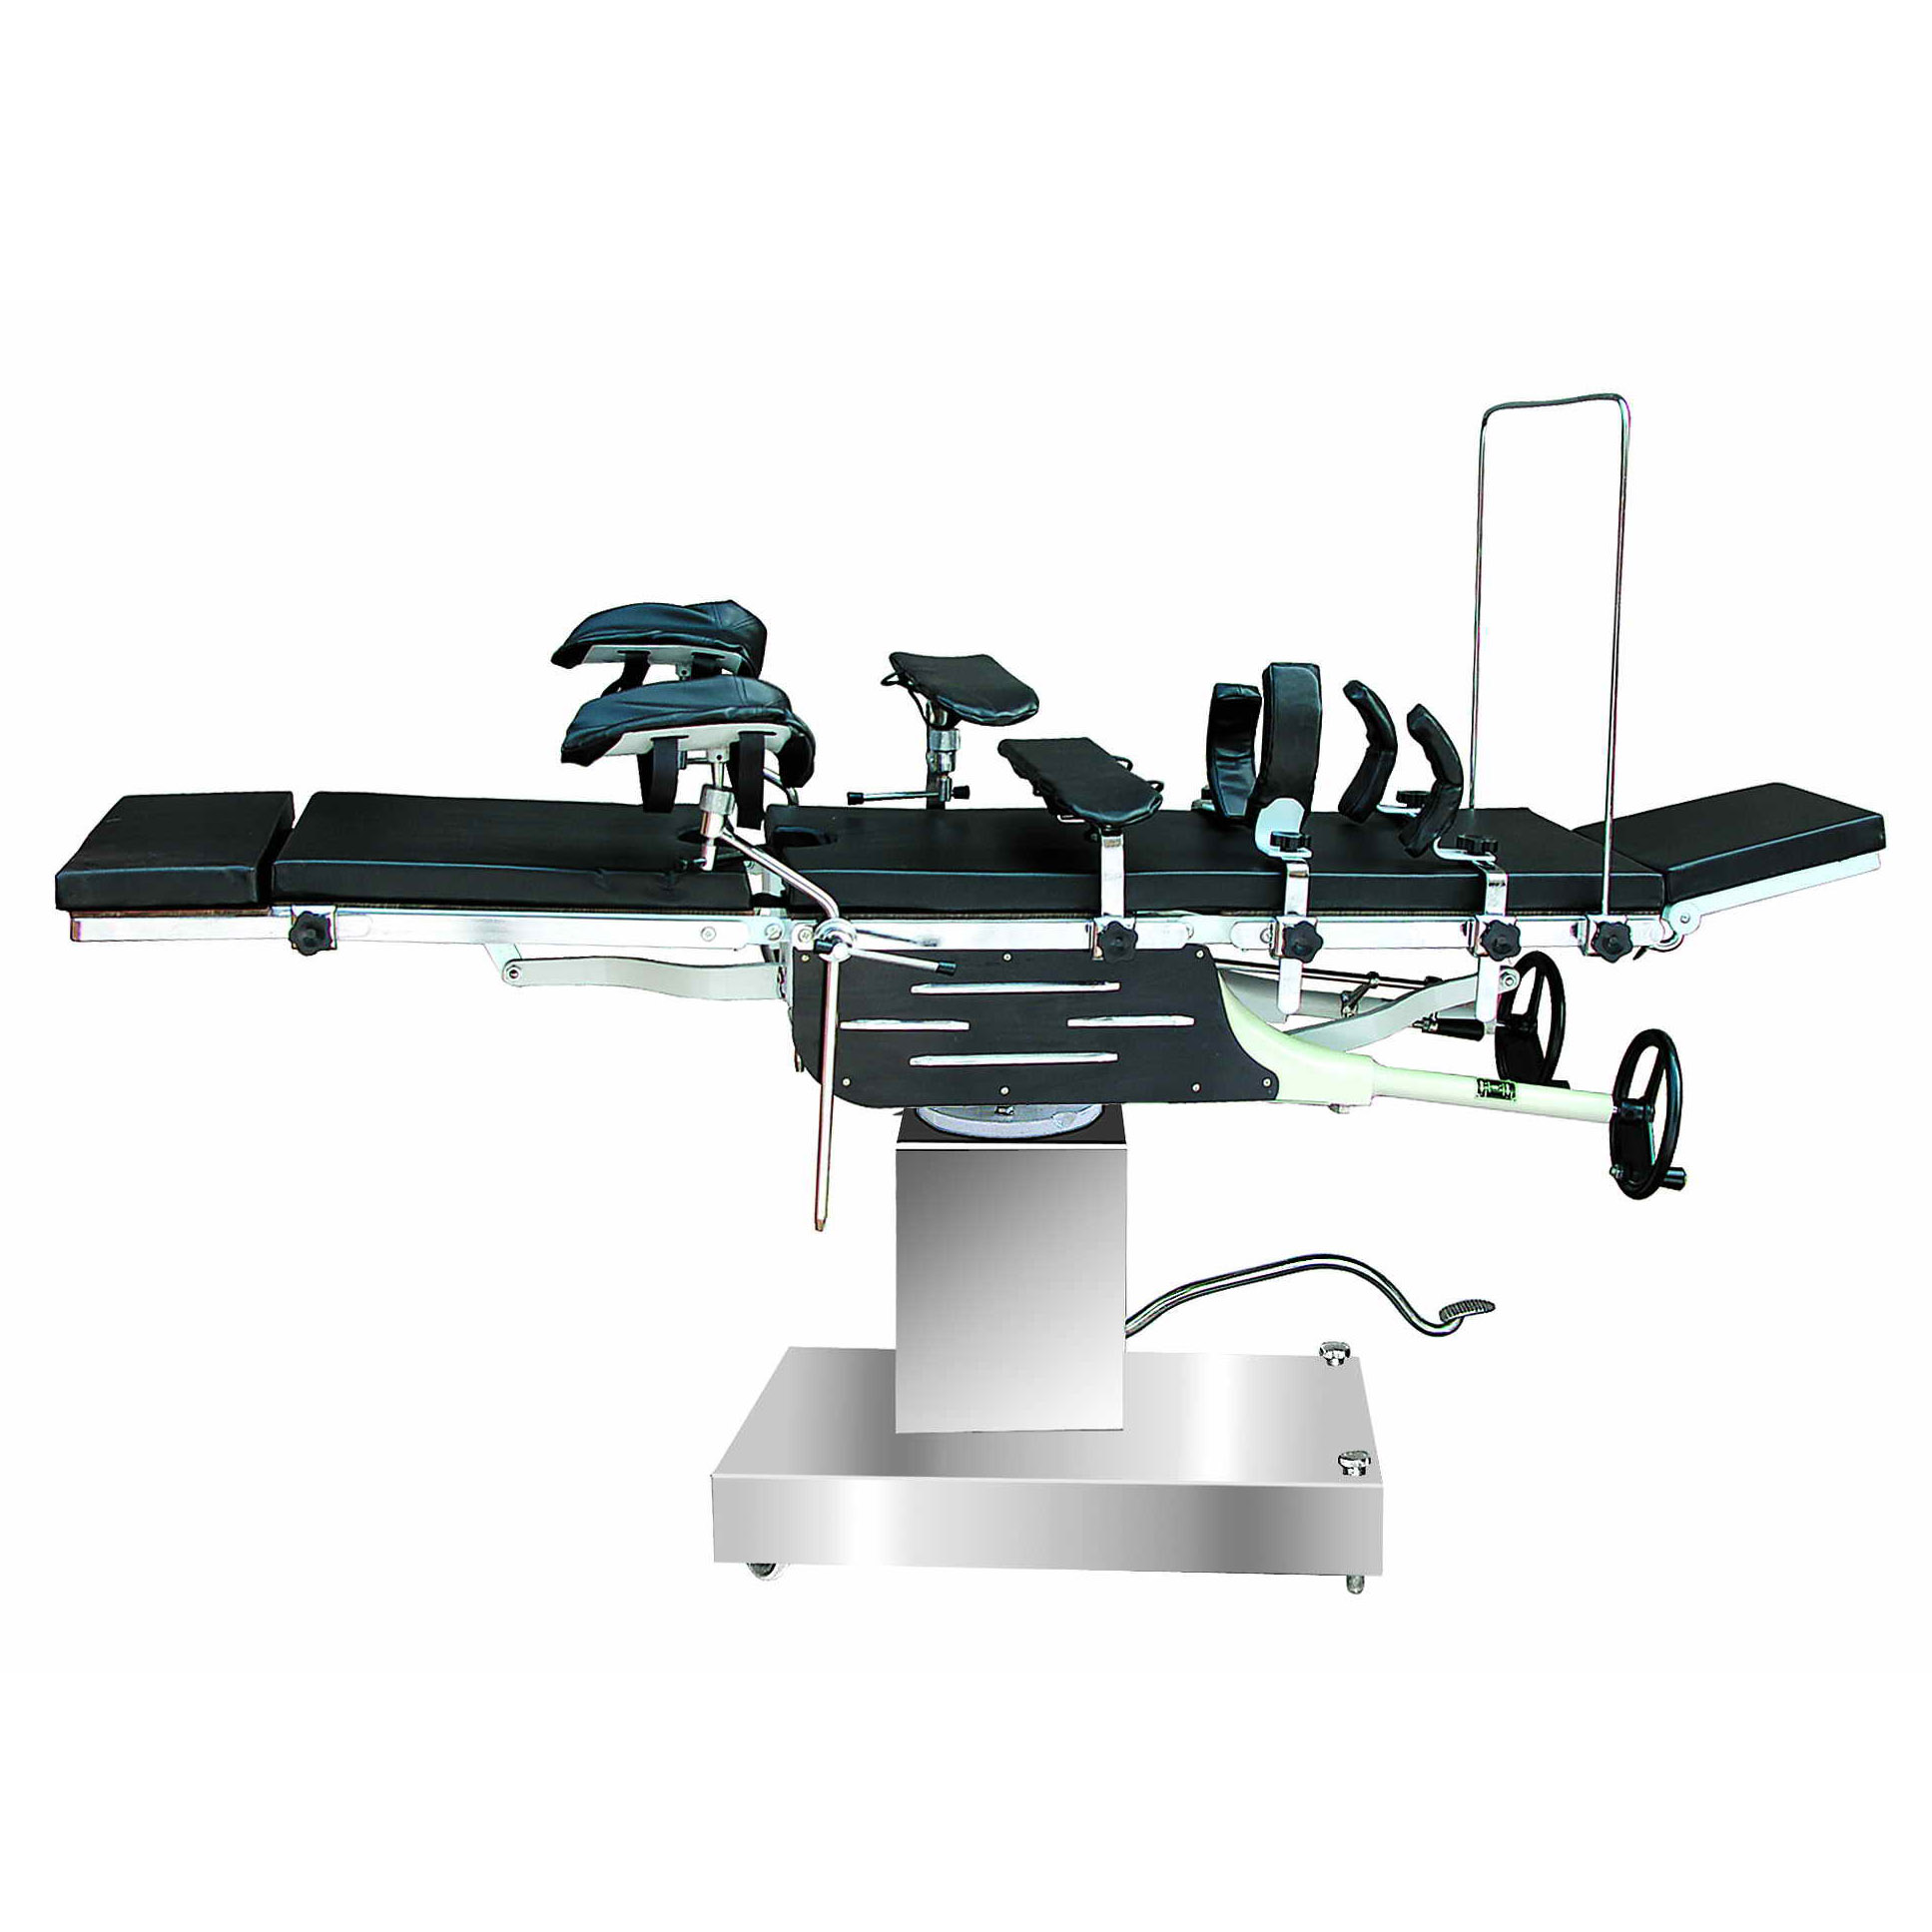 Multi-function Stainless Steel Medical Hospital Operating Table WT-3008A/WT-3008B Price